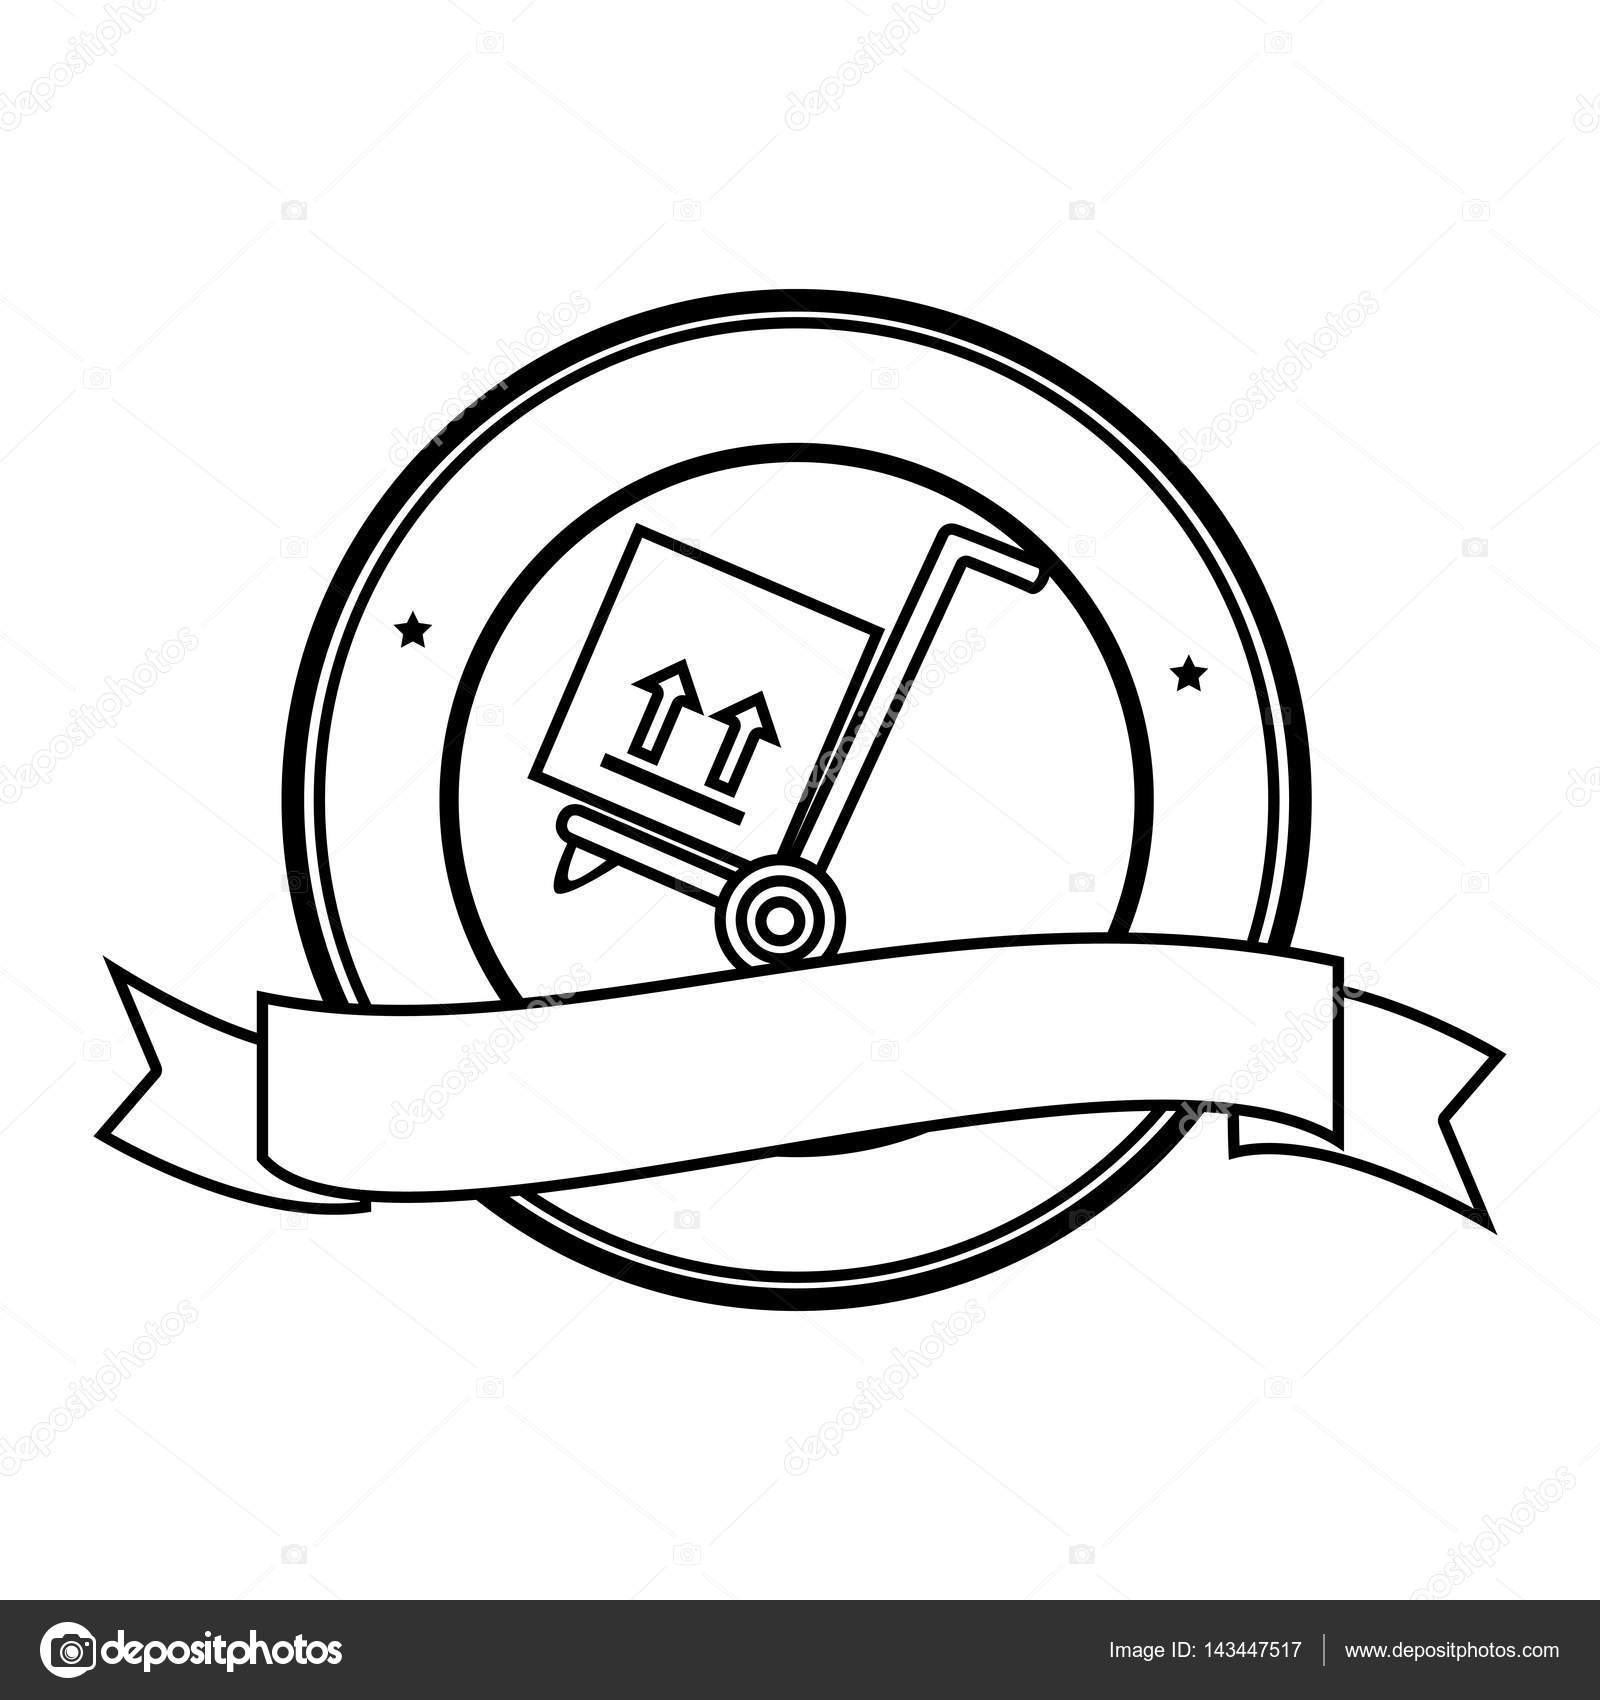 1600x1700 Monochrome Circular Contour Emblem Ribbon And Hand Truck